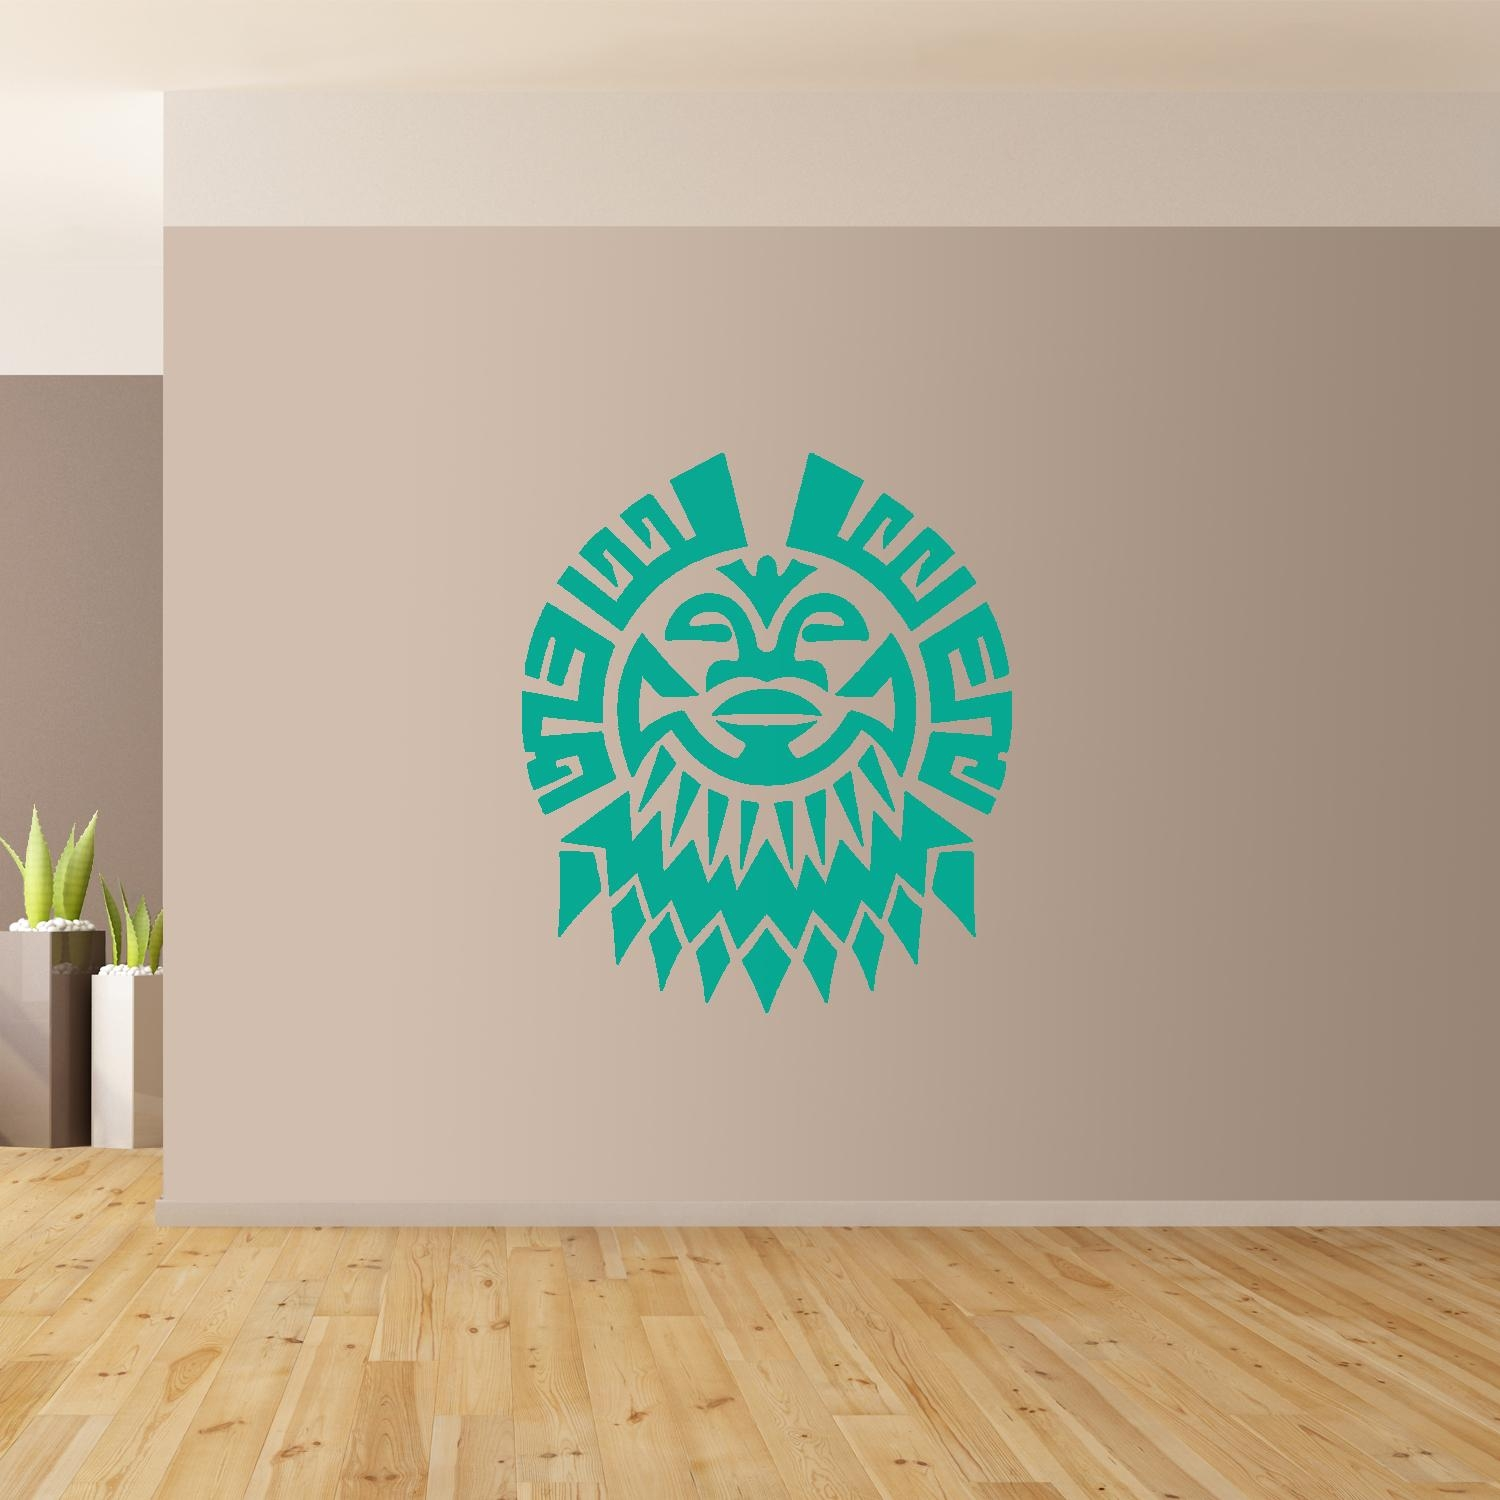 Polynesian Flower Wall Art Giant Sticker Mural Graphic French With Regard To Polynesian Wall Art (View 7 of 20)